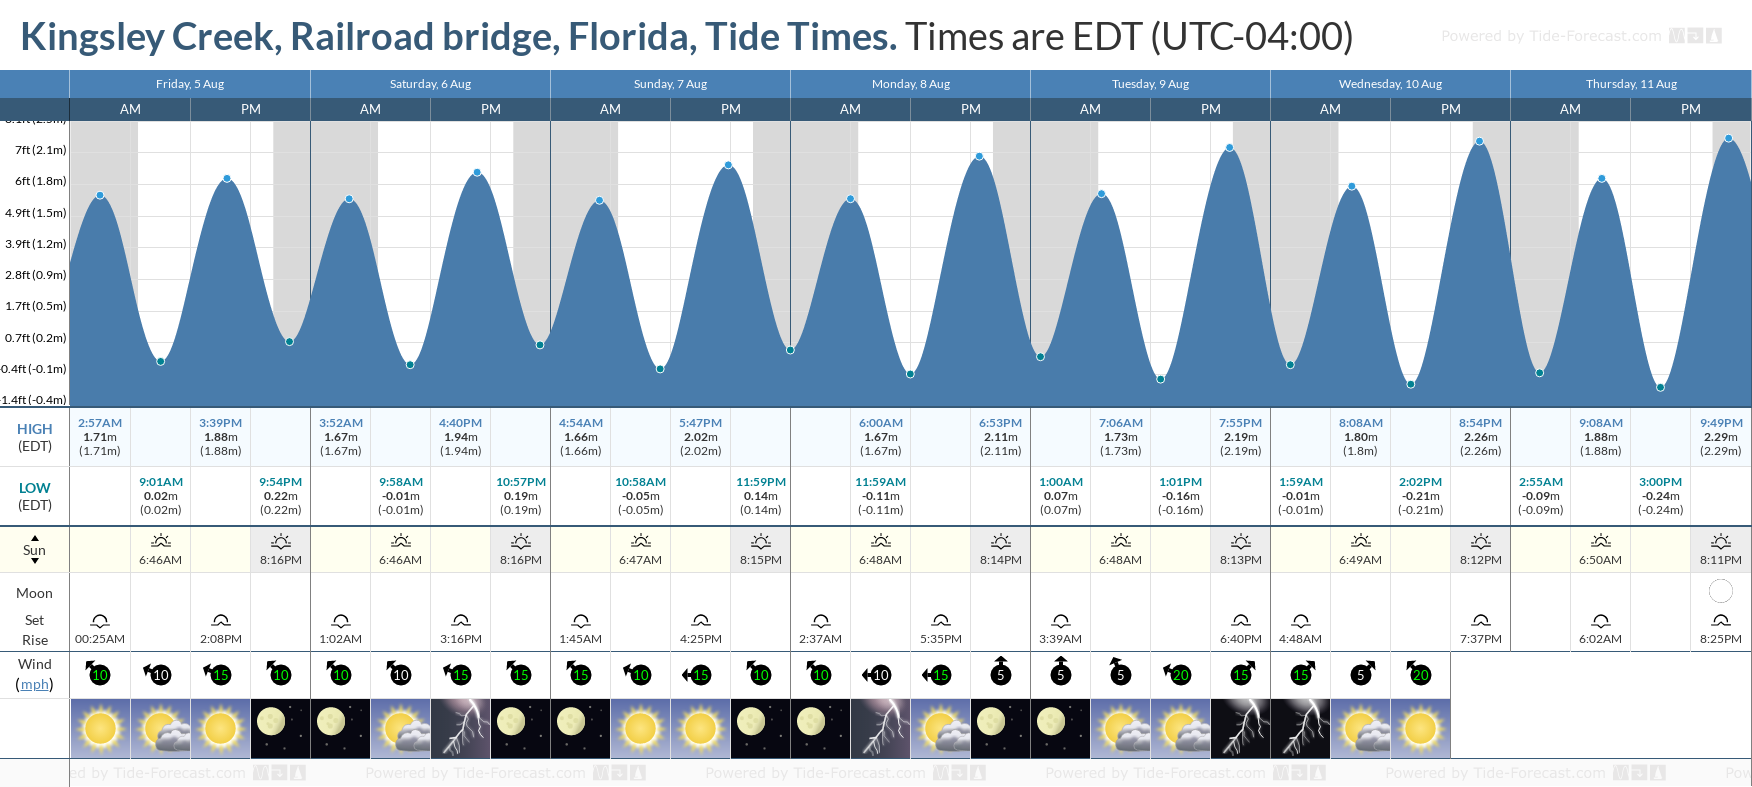 Kingsley Creek, Railroad bridge, Florida Tide Chart including high and low tide tide times for the next 7 days